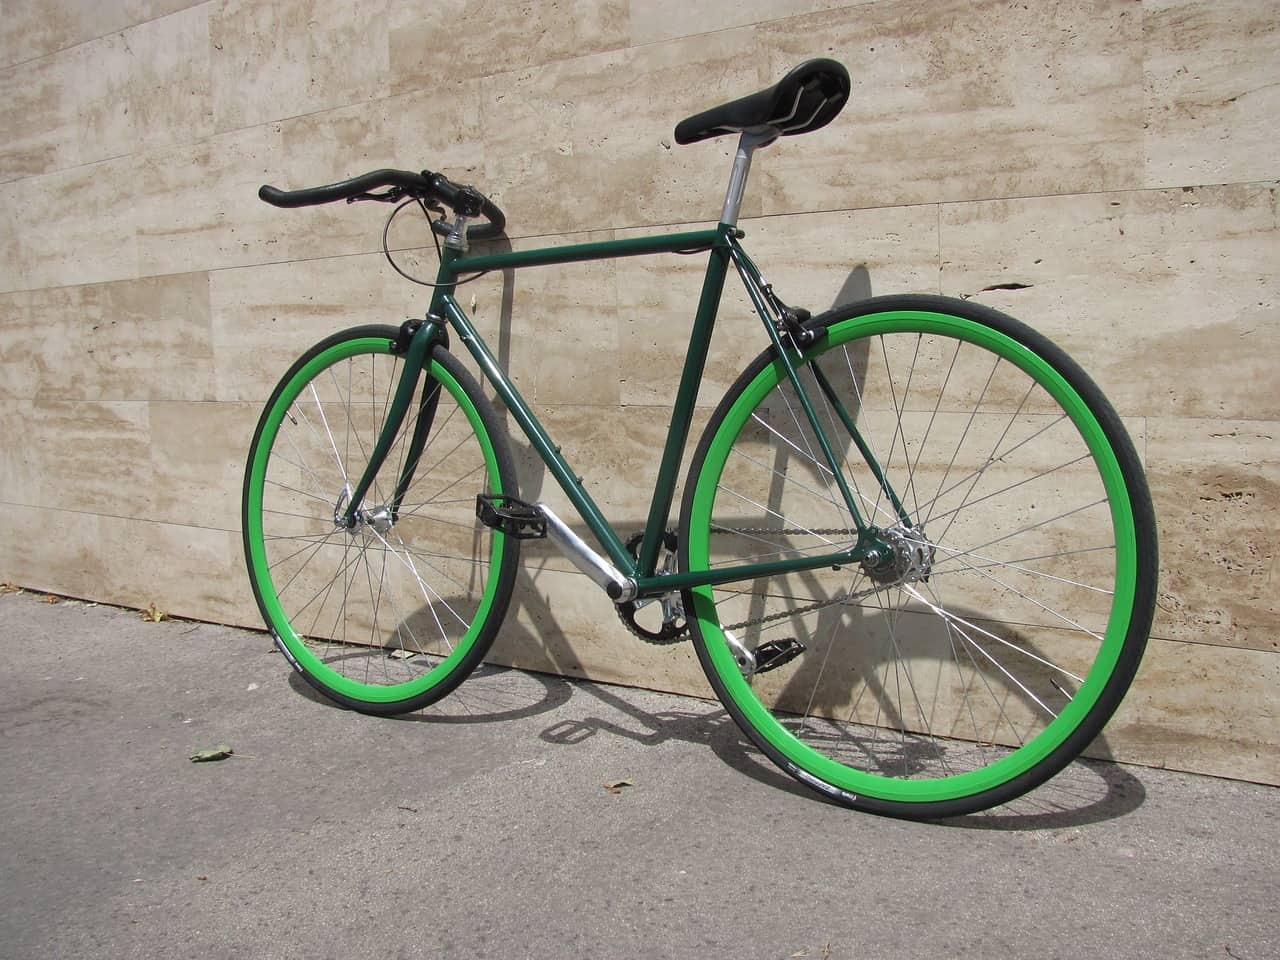 What Is And Why Ride A Fixed Gear Bike?